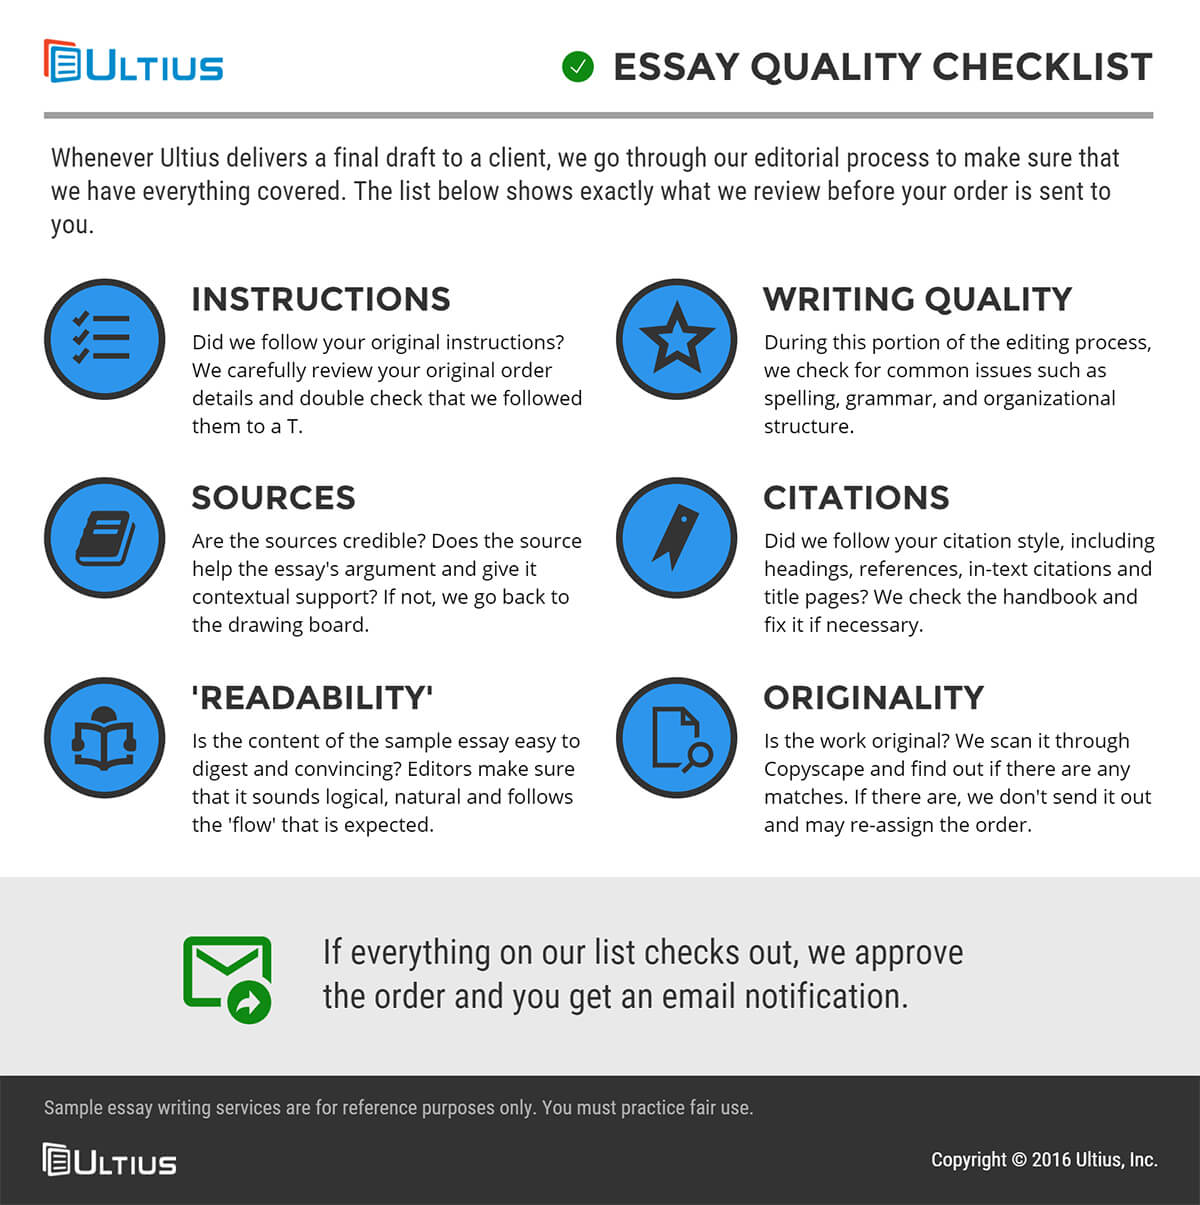 Buy an Essay Online to Sleep Well